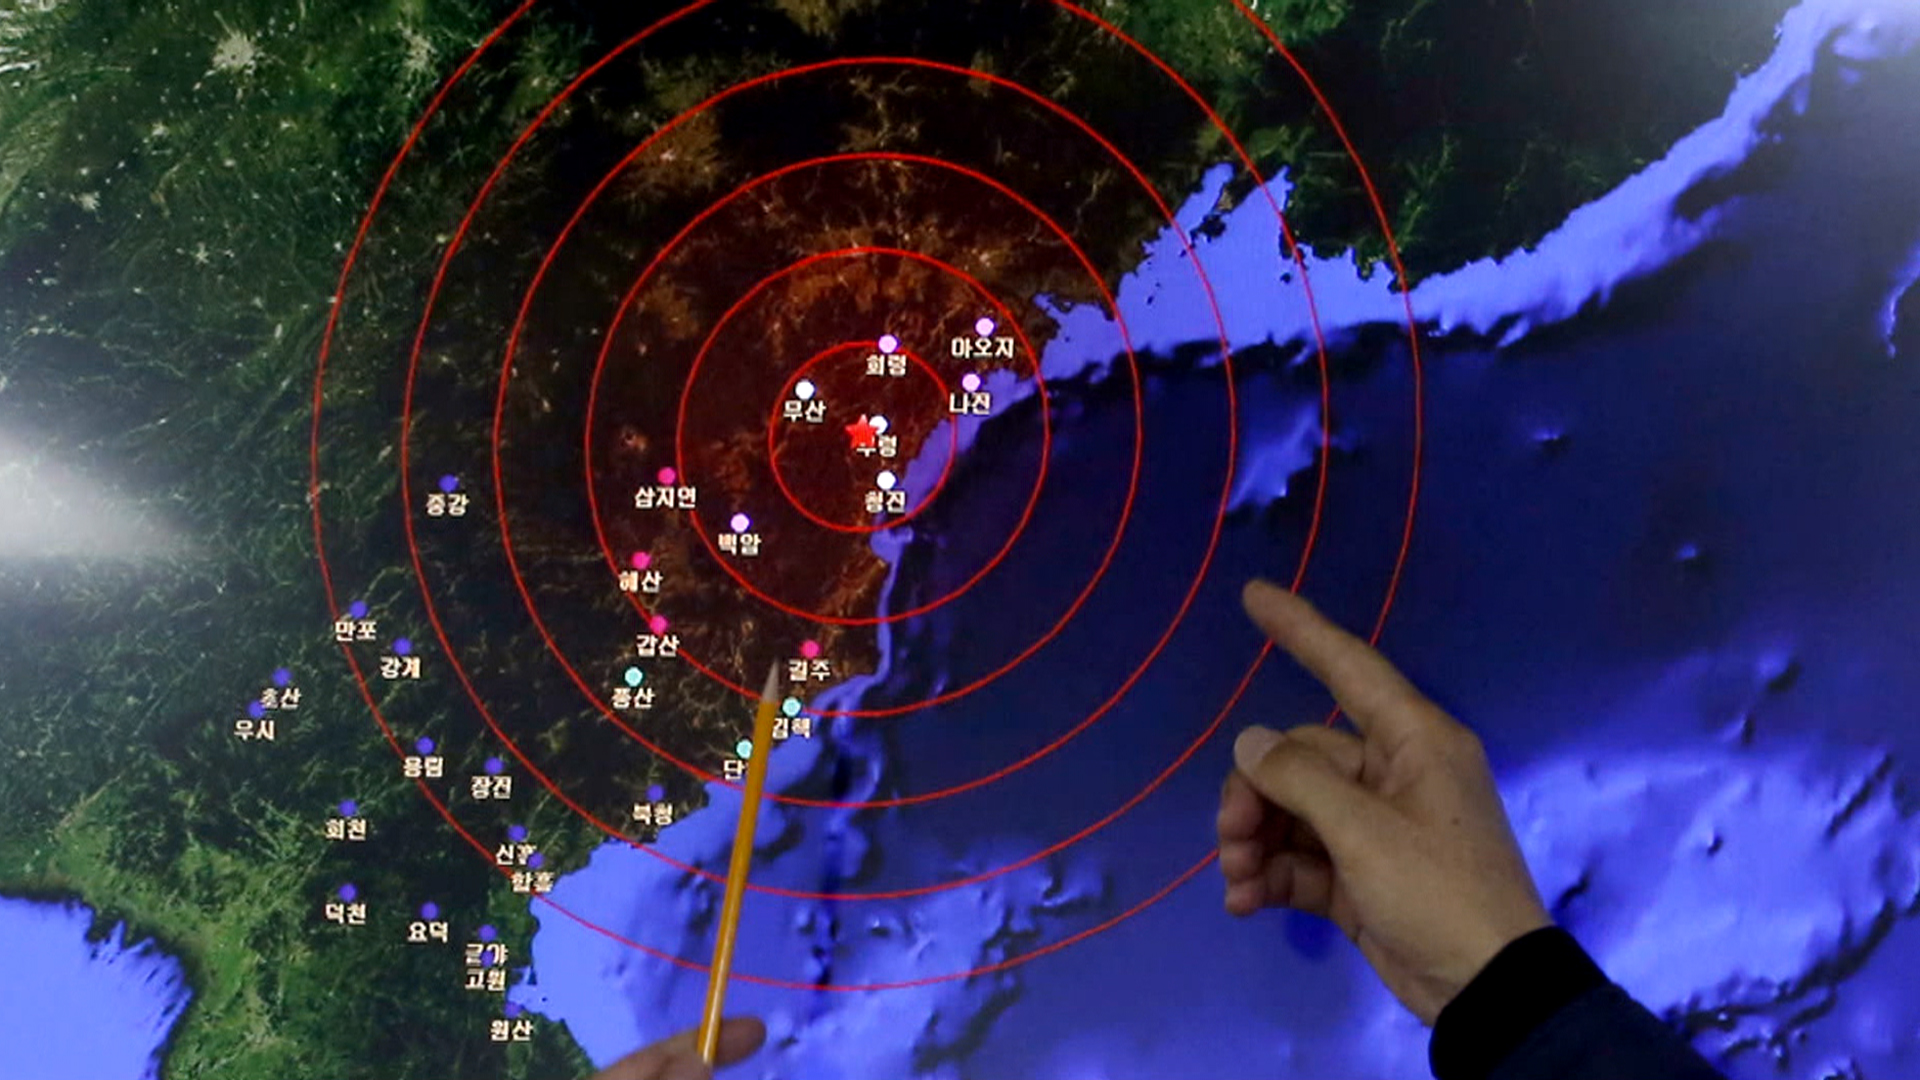 S. Korea Fires Warning Shots Amid Tensions Over North's Nuclear Test